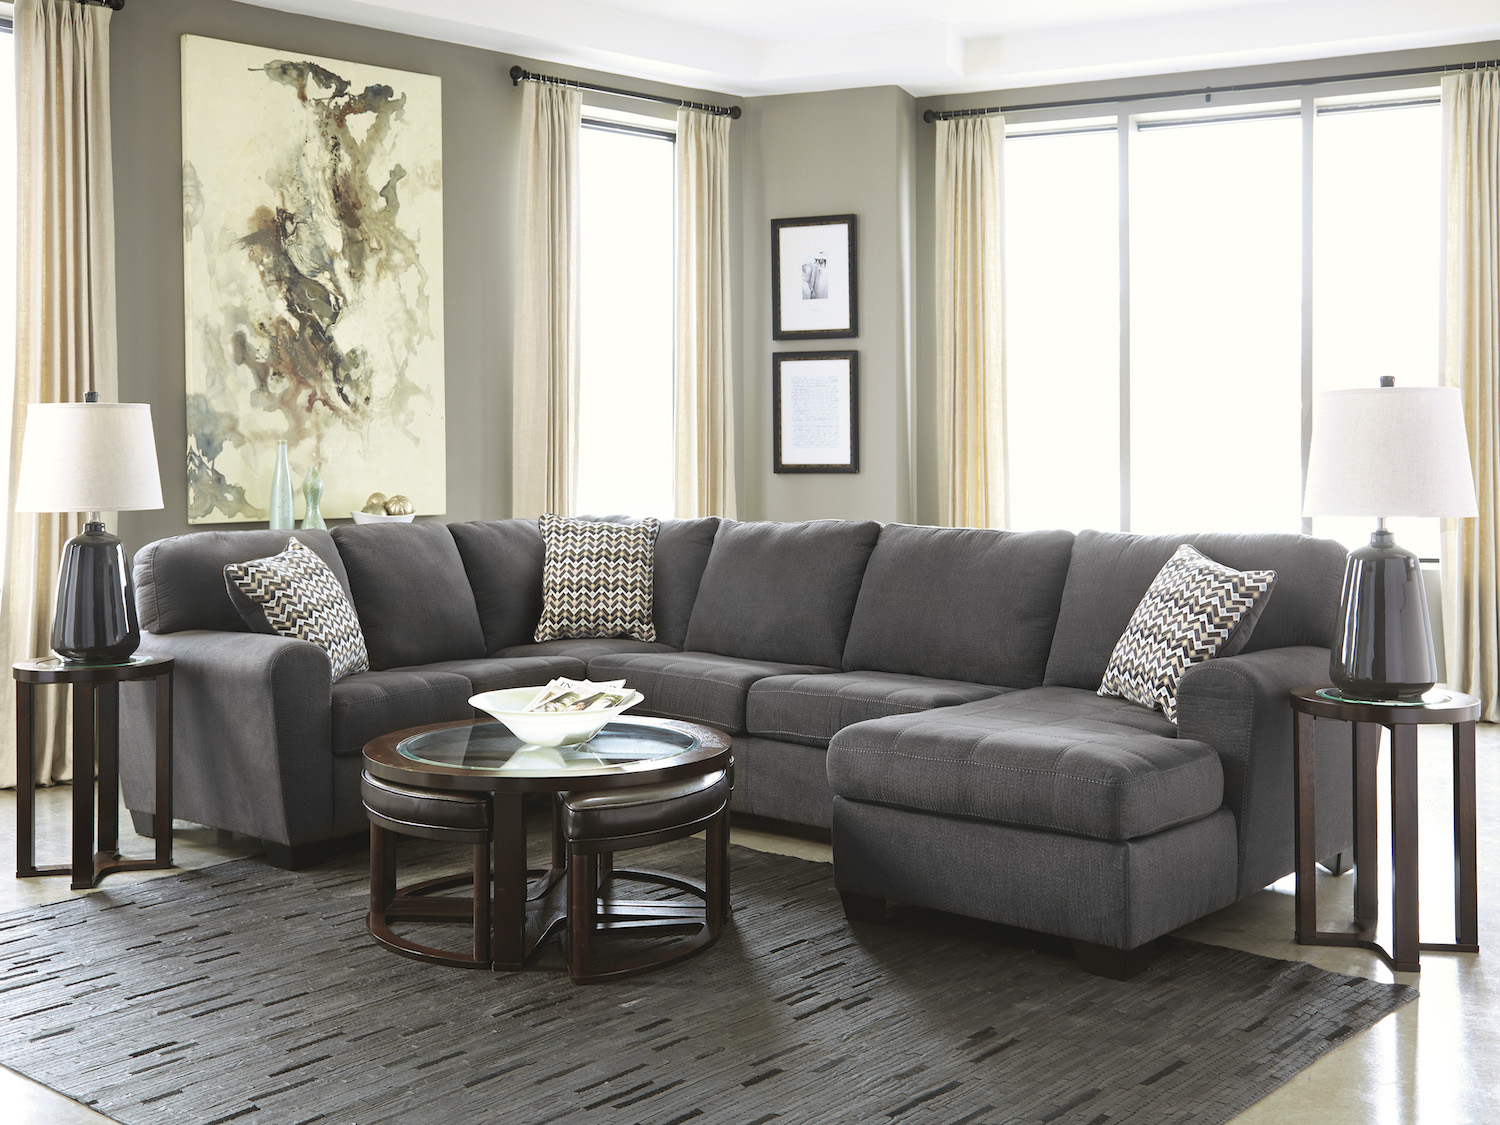 Sorenton, 28600, Sectionals by Midha Furniture to Brampton, Mississauga, Etobicoke, Toronto, Scraborough, Caledon, Oakville, Markham, Ajax, Pickering, Oshawa, Richmondhill, Kitchener, Hamilton and GTA area